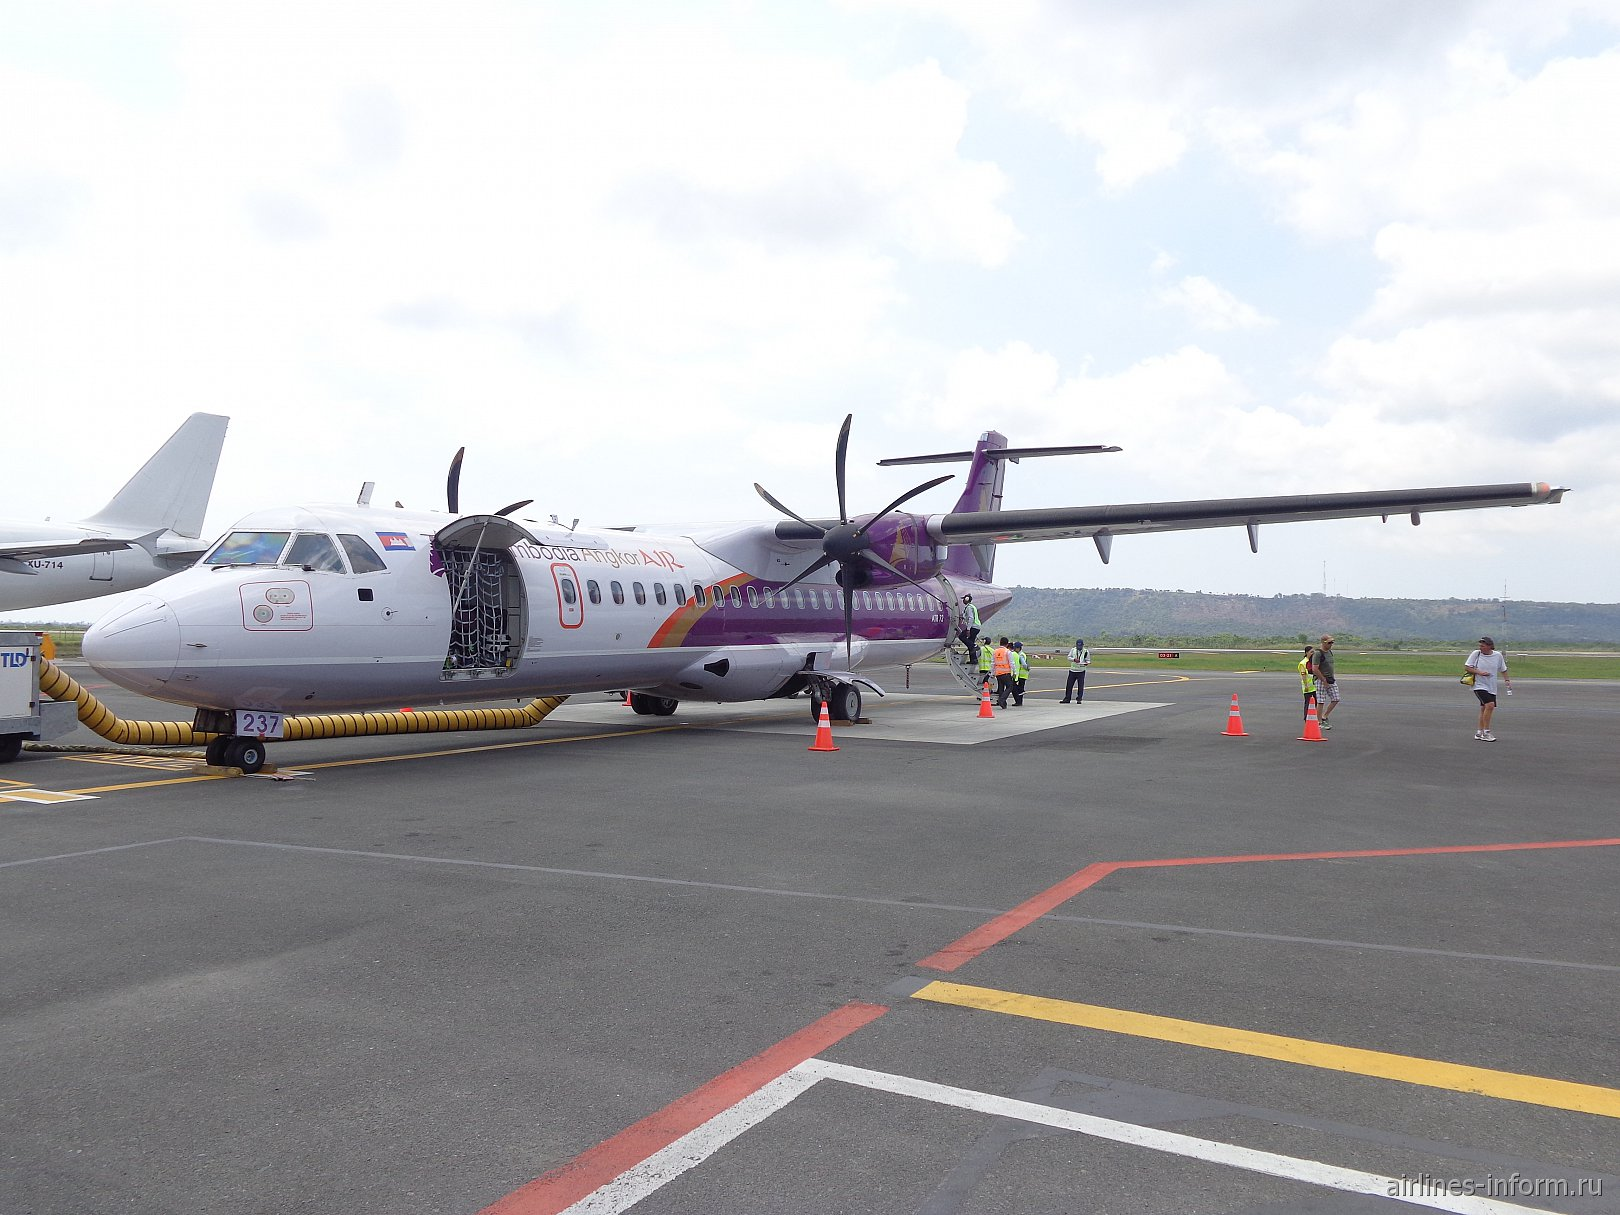 В гости к кхмерам. Часть 4 - Siem Reap (REP) - Sihanoukville (KOS), с Cambodia Angkor Air на ATR-72-500